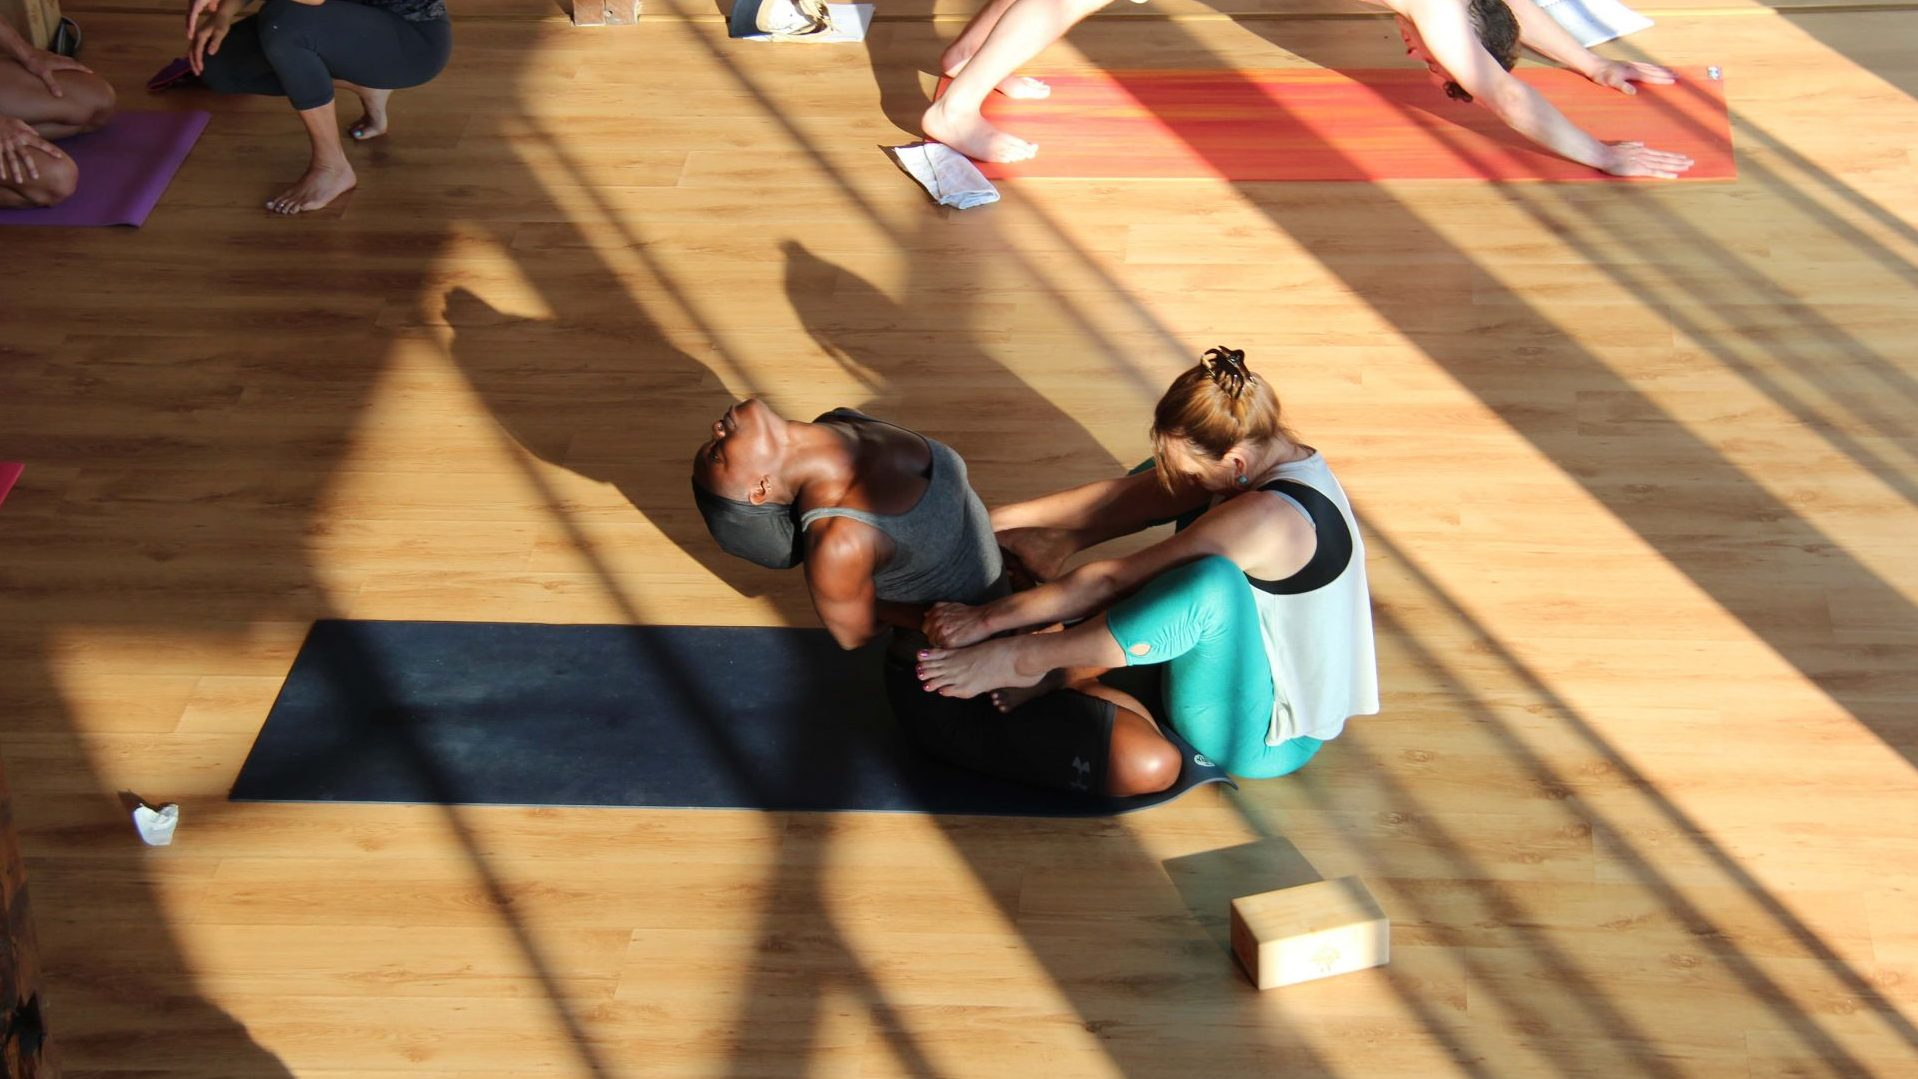 Yoga teacher Valerie giving instructions while a trainee is posing in Bulgaria